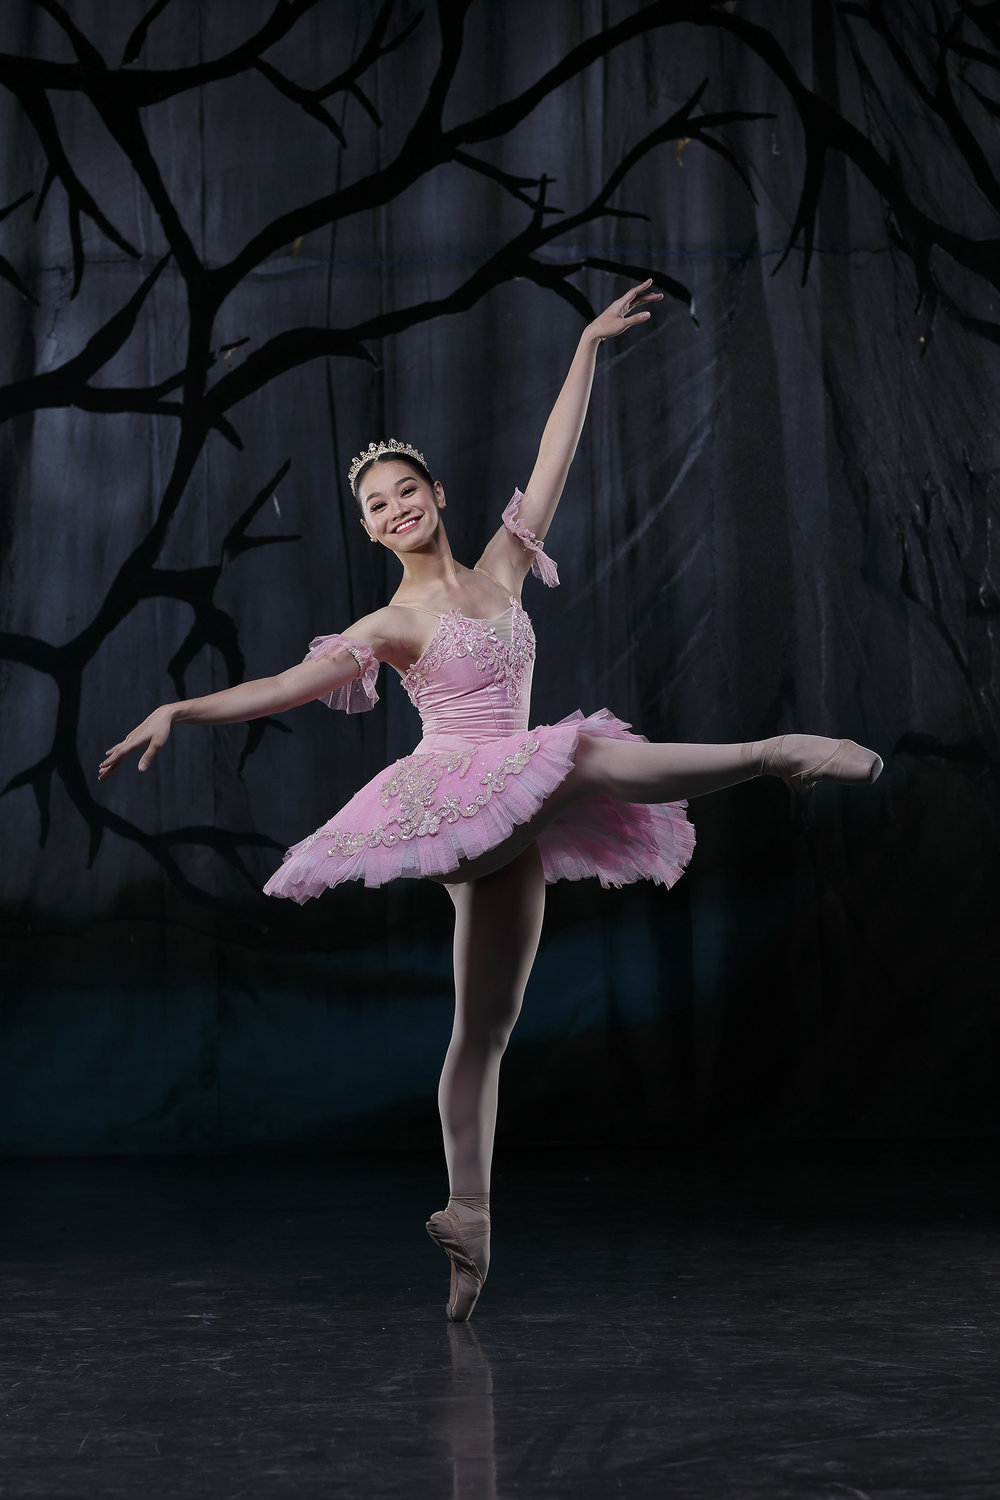 Being away from ballet made Dawna Reign Mangahas realize dancing is what she truly loves to do. She brings to life the Sugar Plum Fairy in    The Swan, The Fairy and the Princess   .